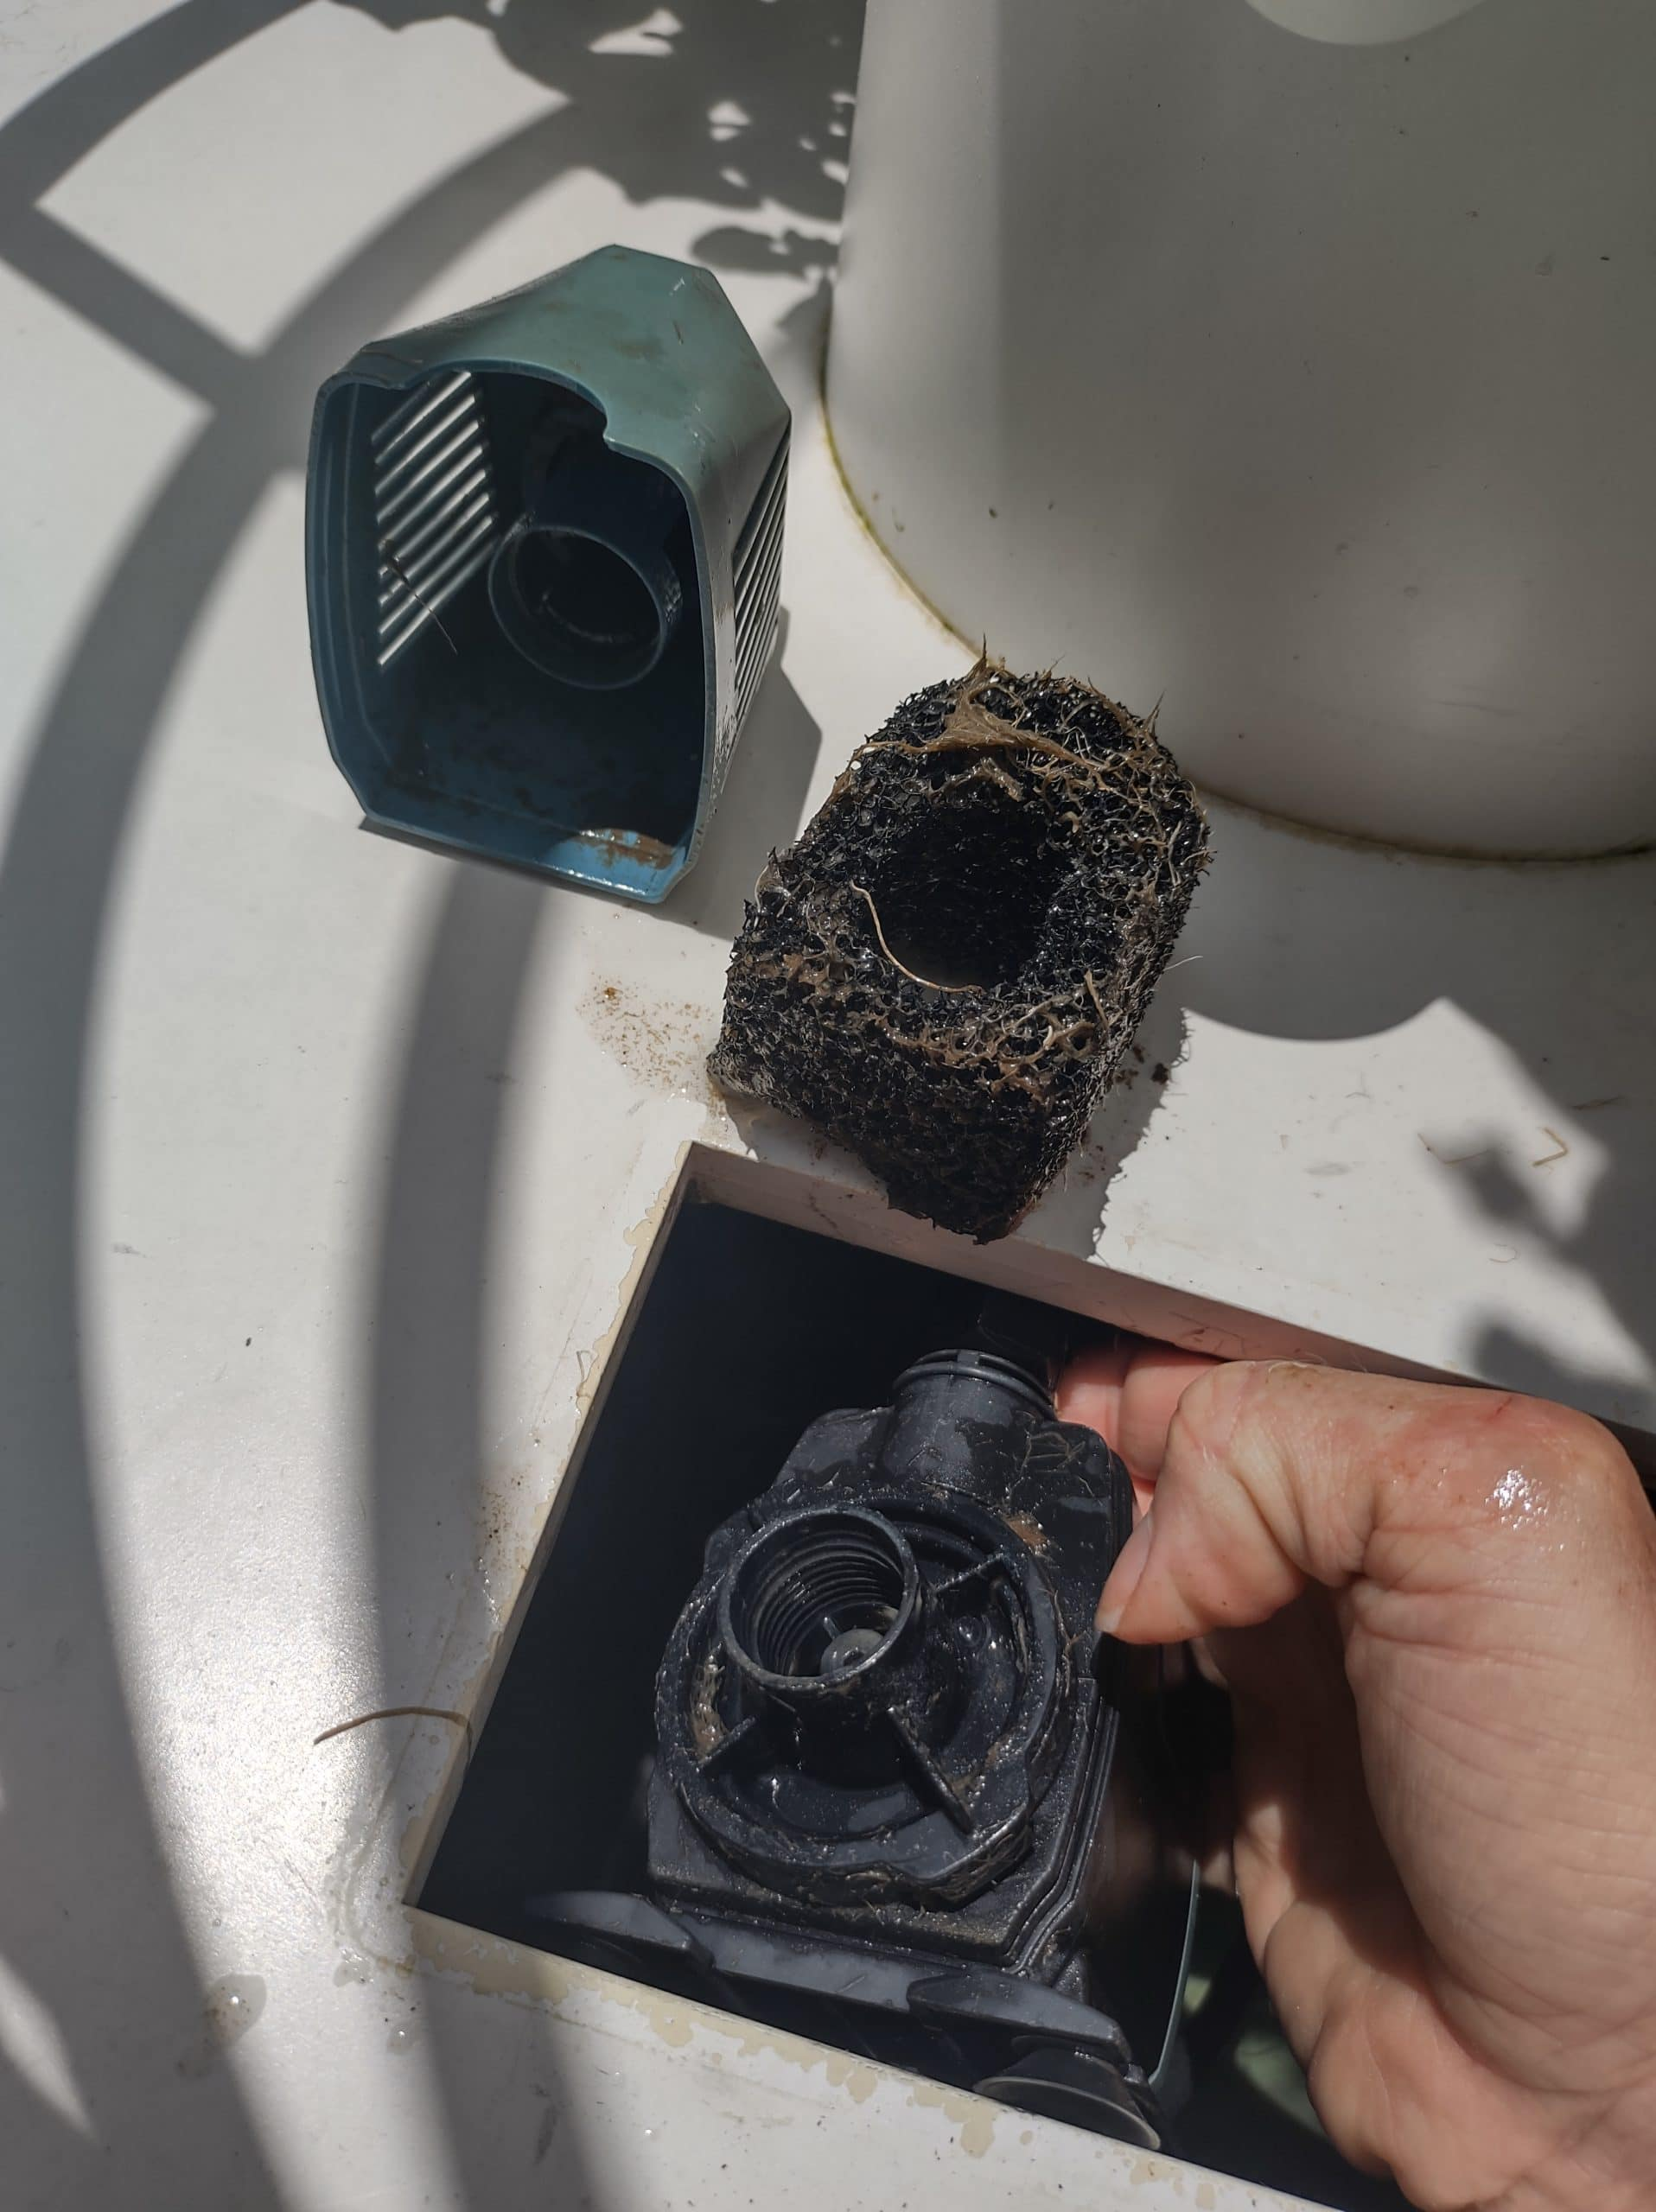 Clean the pump and pump filter